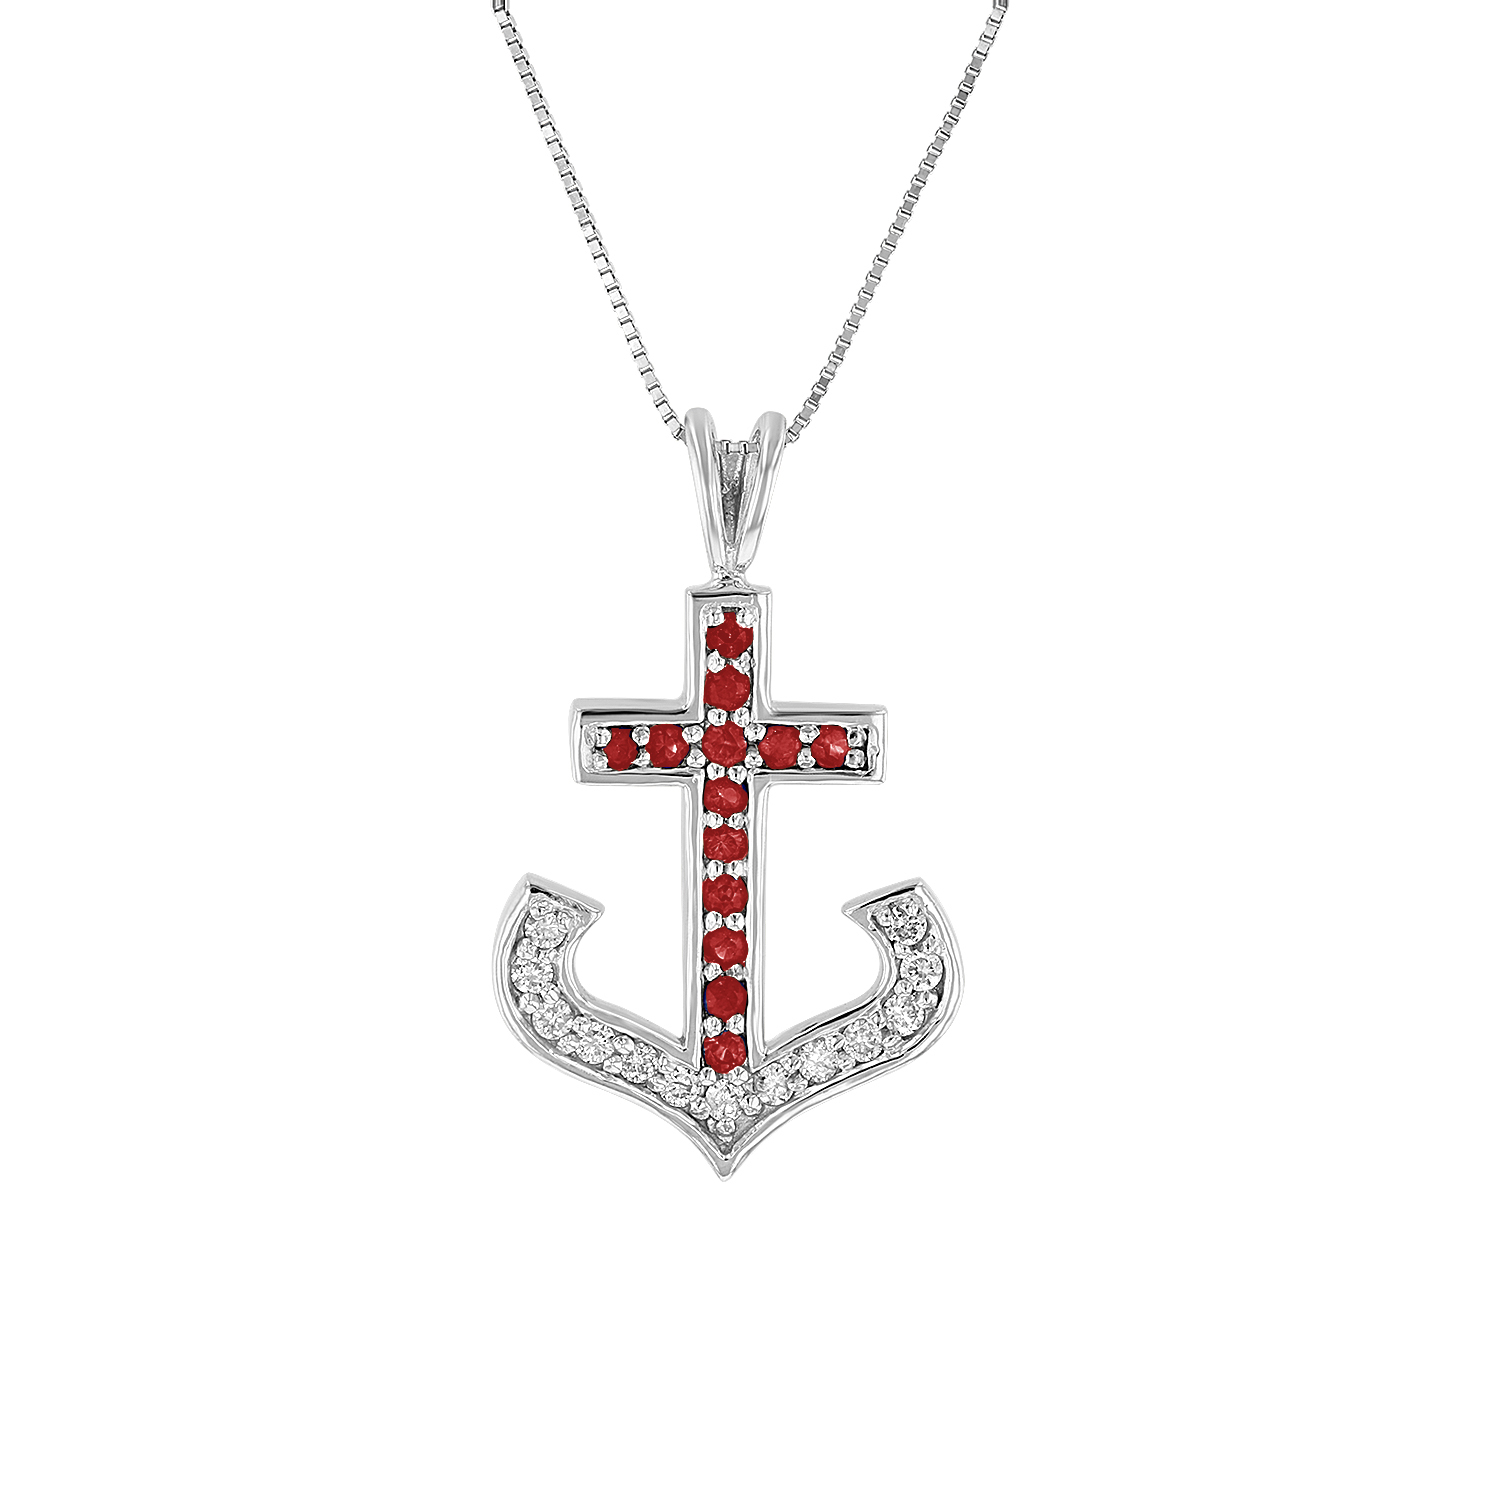 View 0.50ctw DIamond and Ruby Anchor Cross Pendant in 14k White Gold